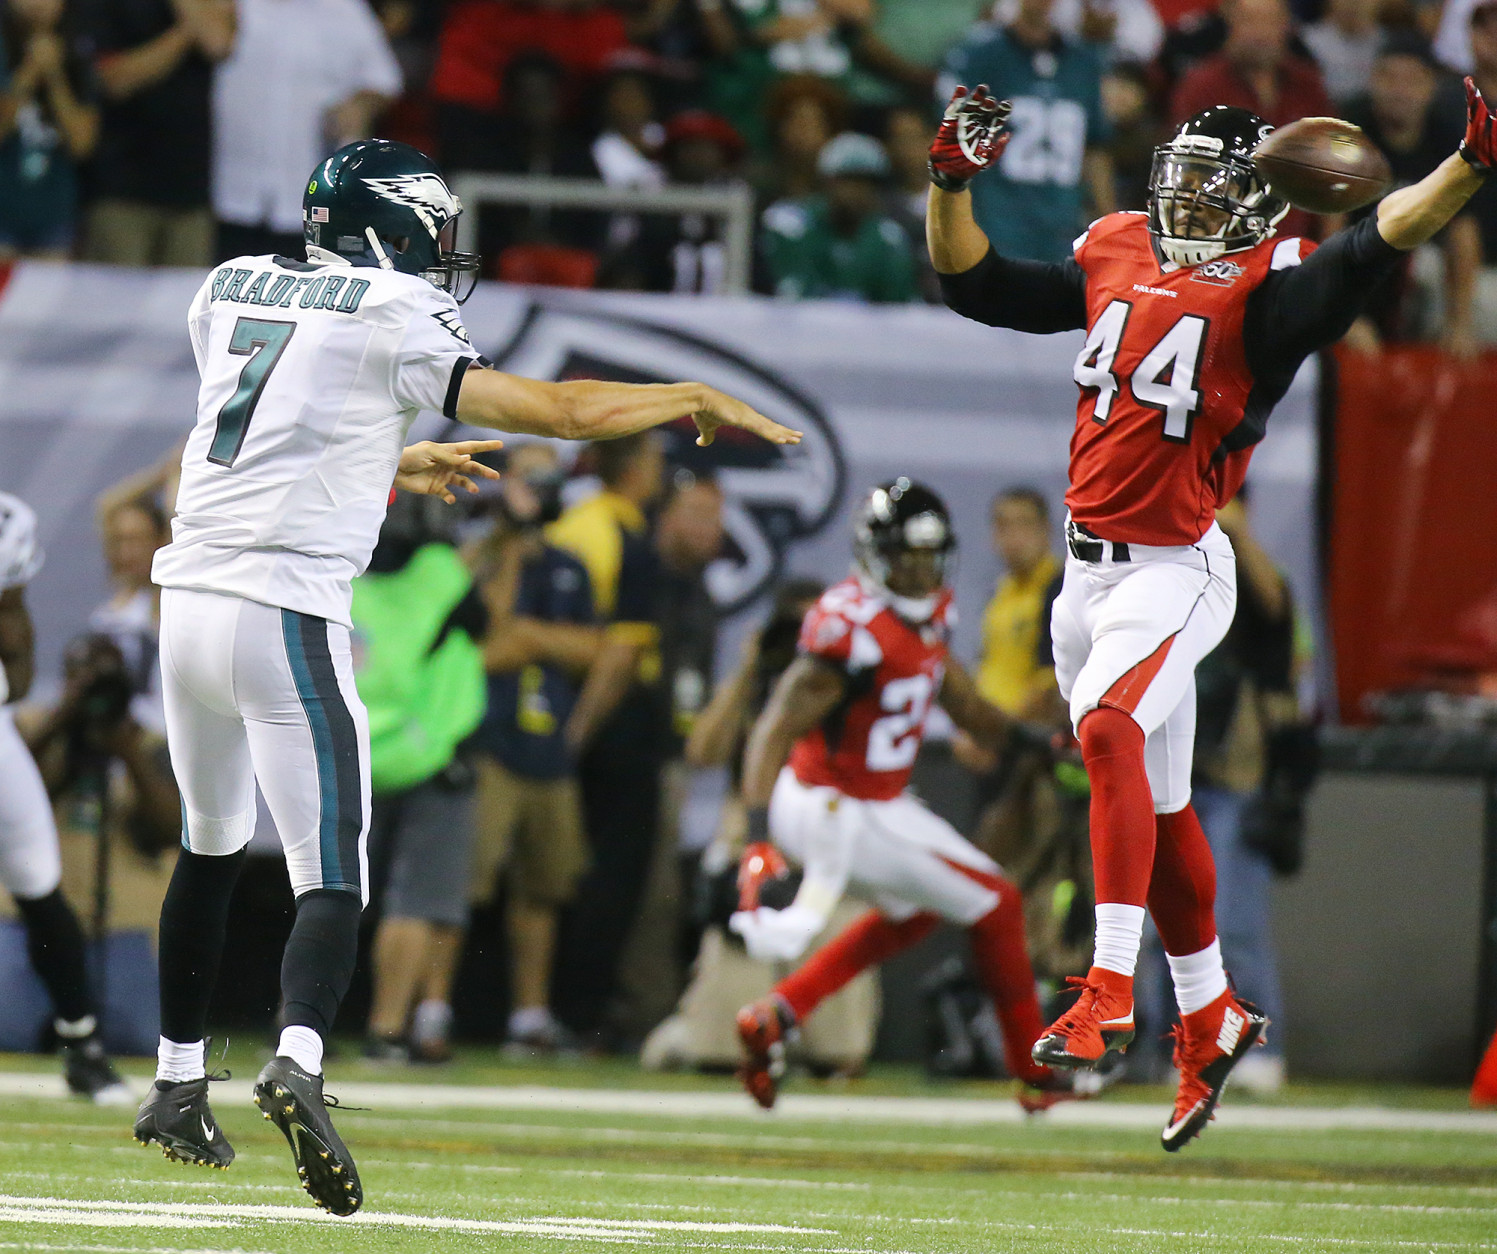 Falcons Vic Beasley Jr. just misses blocking a pass by Eagles quarterback Sam Bradford during an NFL football game on Monday, Sept. 14, 2015, in Atlanta. (Curtis Compton/Atlanta-Journal Constitution via AP) MARIETTA DAILY OUT, GWINNETT DAILY POST OUT, LOCAL TV OUT (WXIA, WGCL, FOX 5)